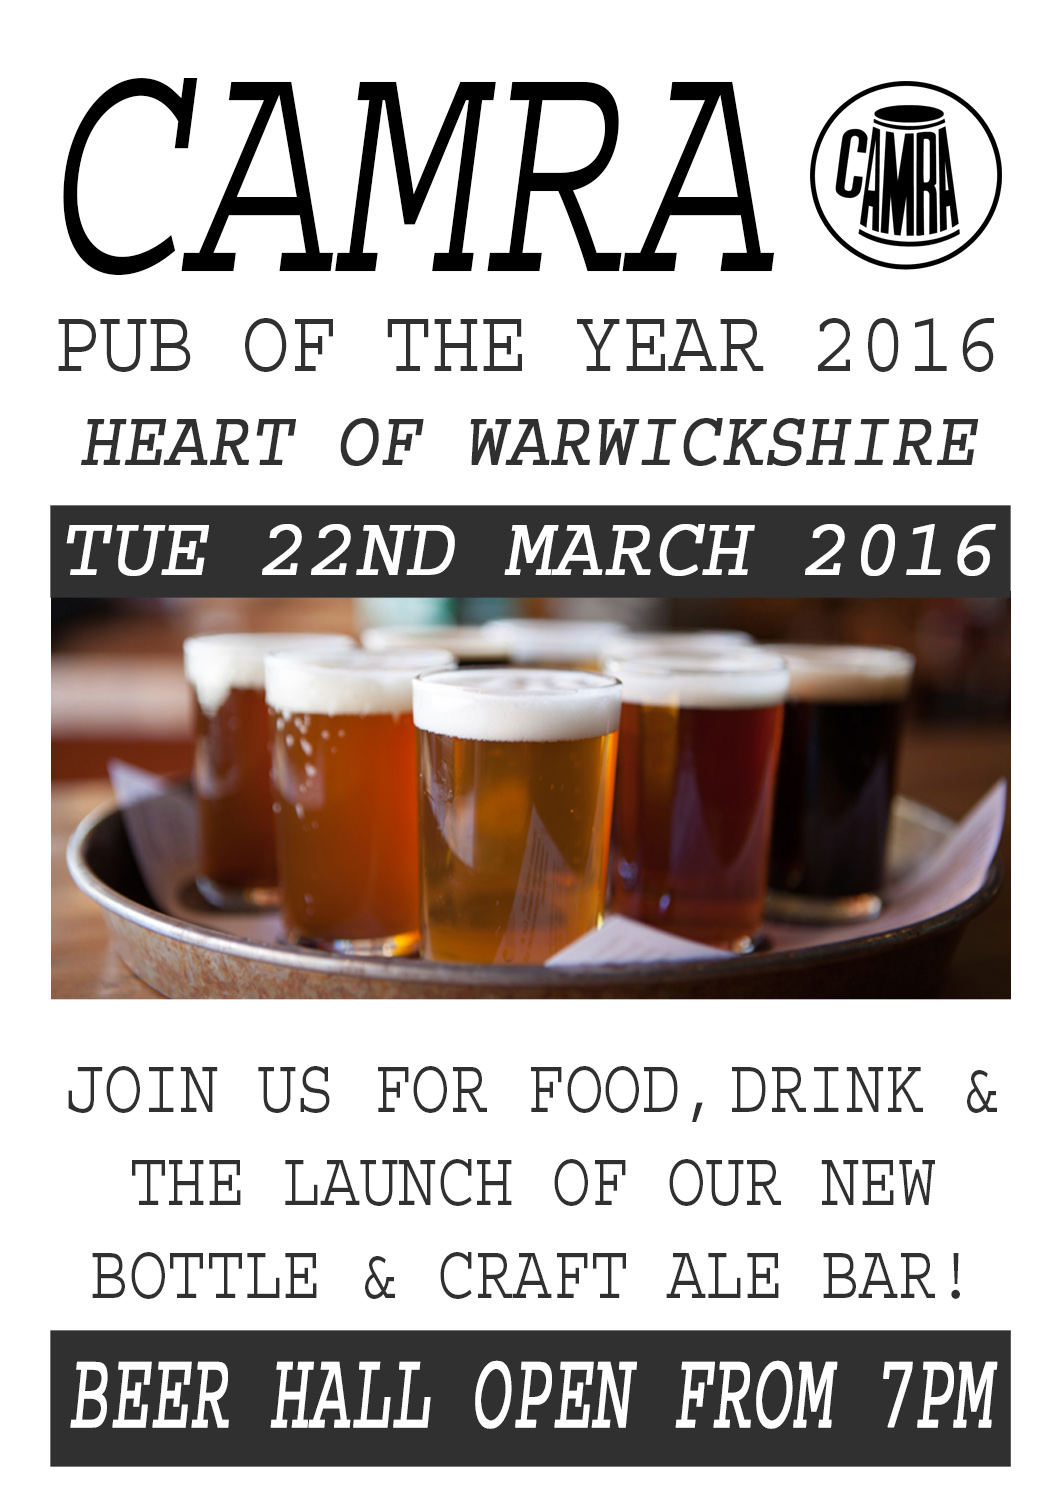 CAMRA pub of the year 2016